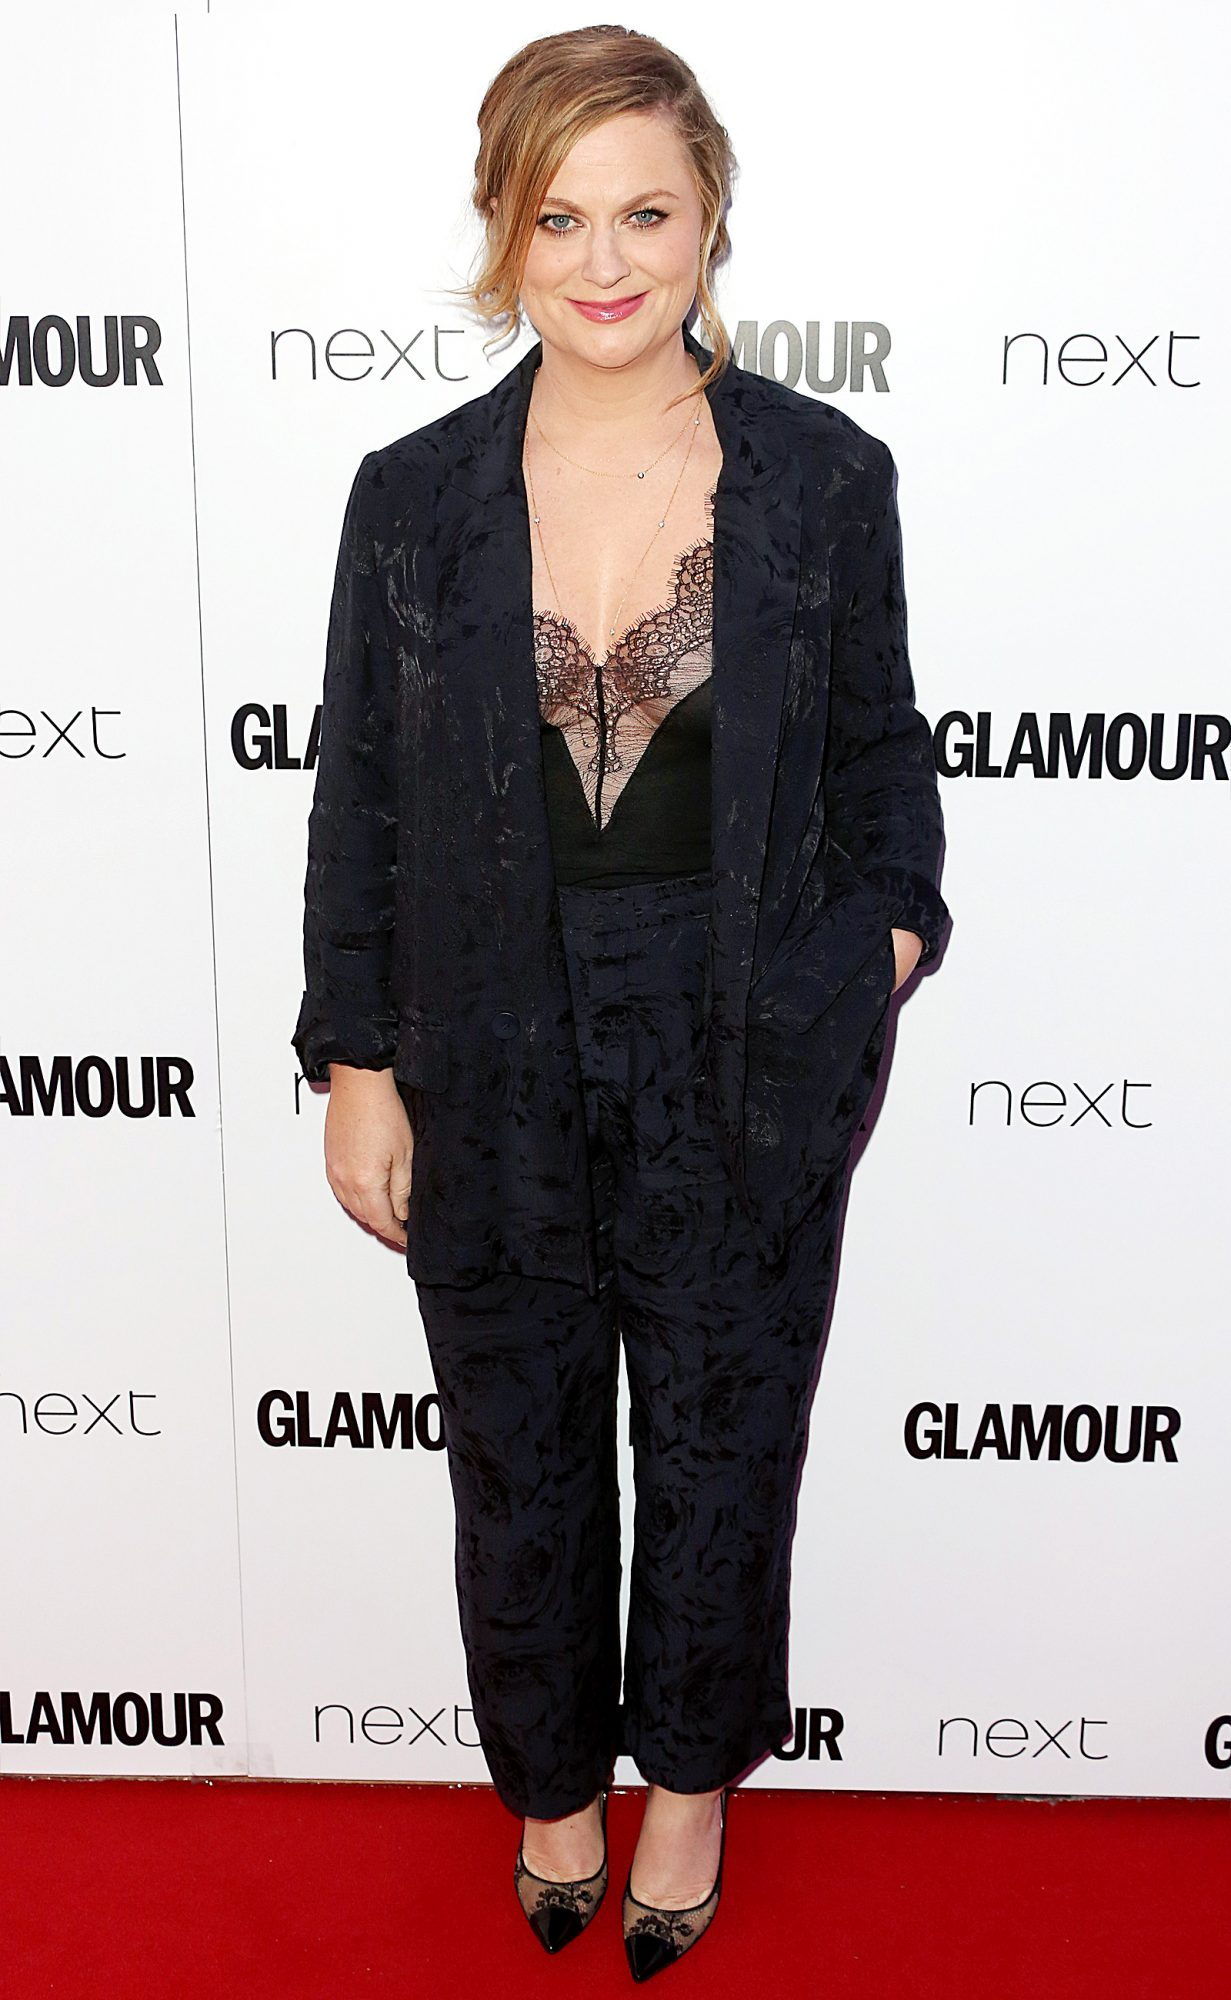 Glamour: Women of the Year Awards 2017